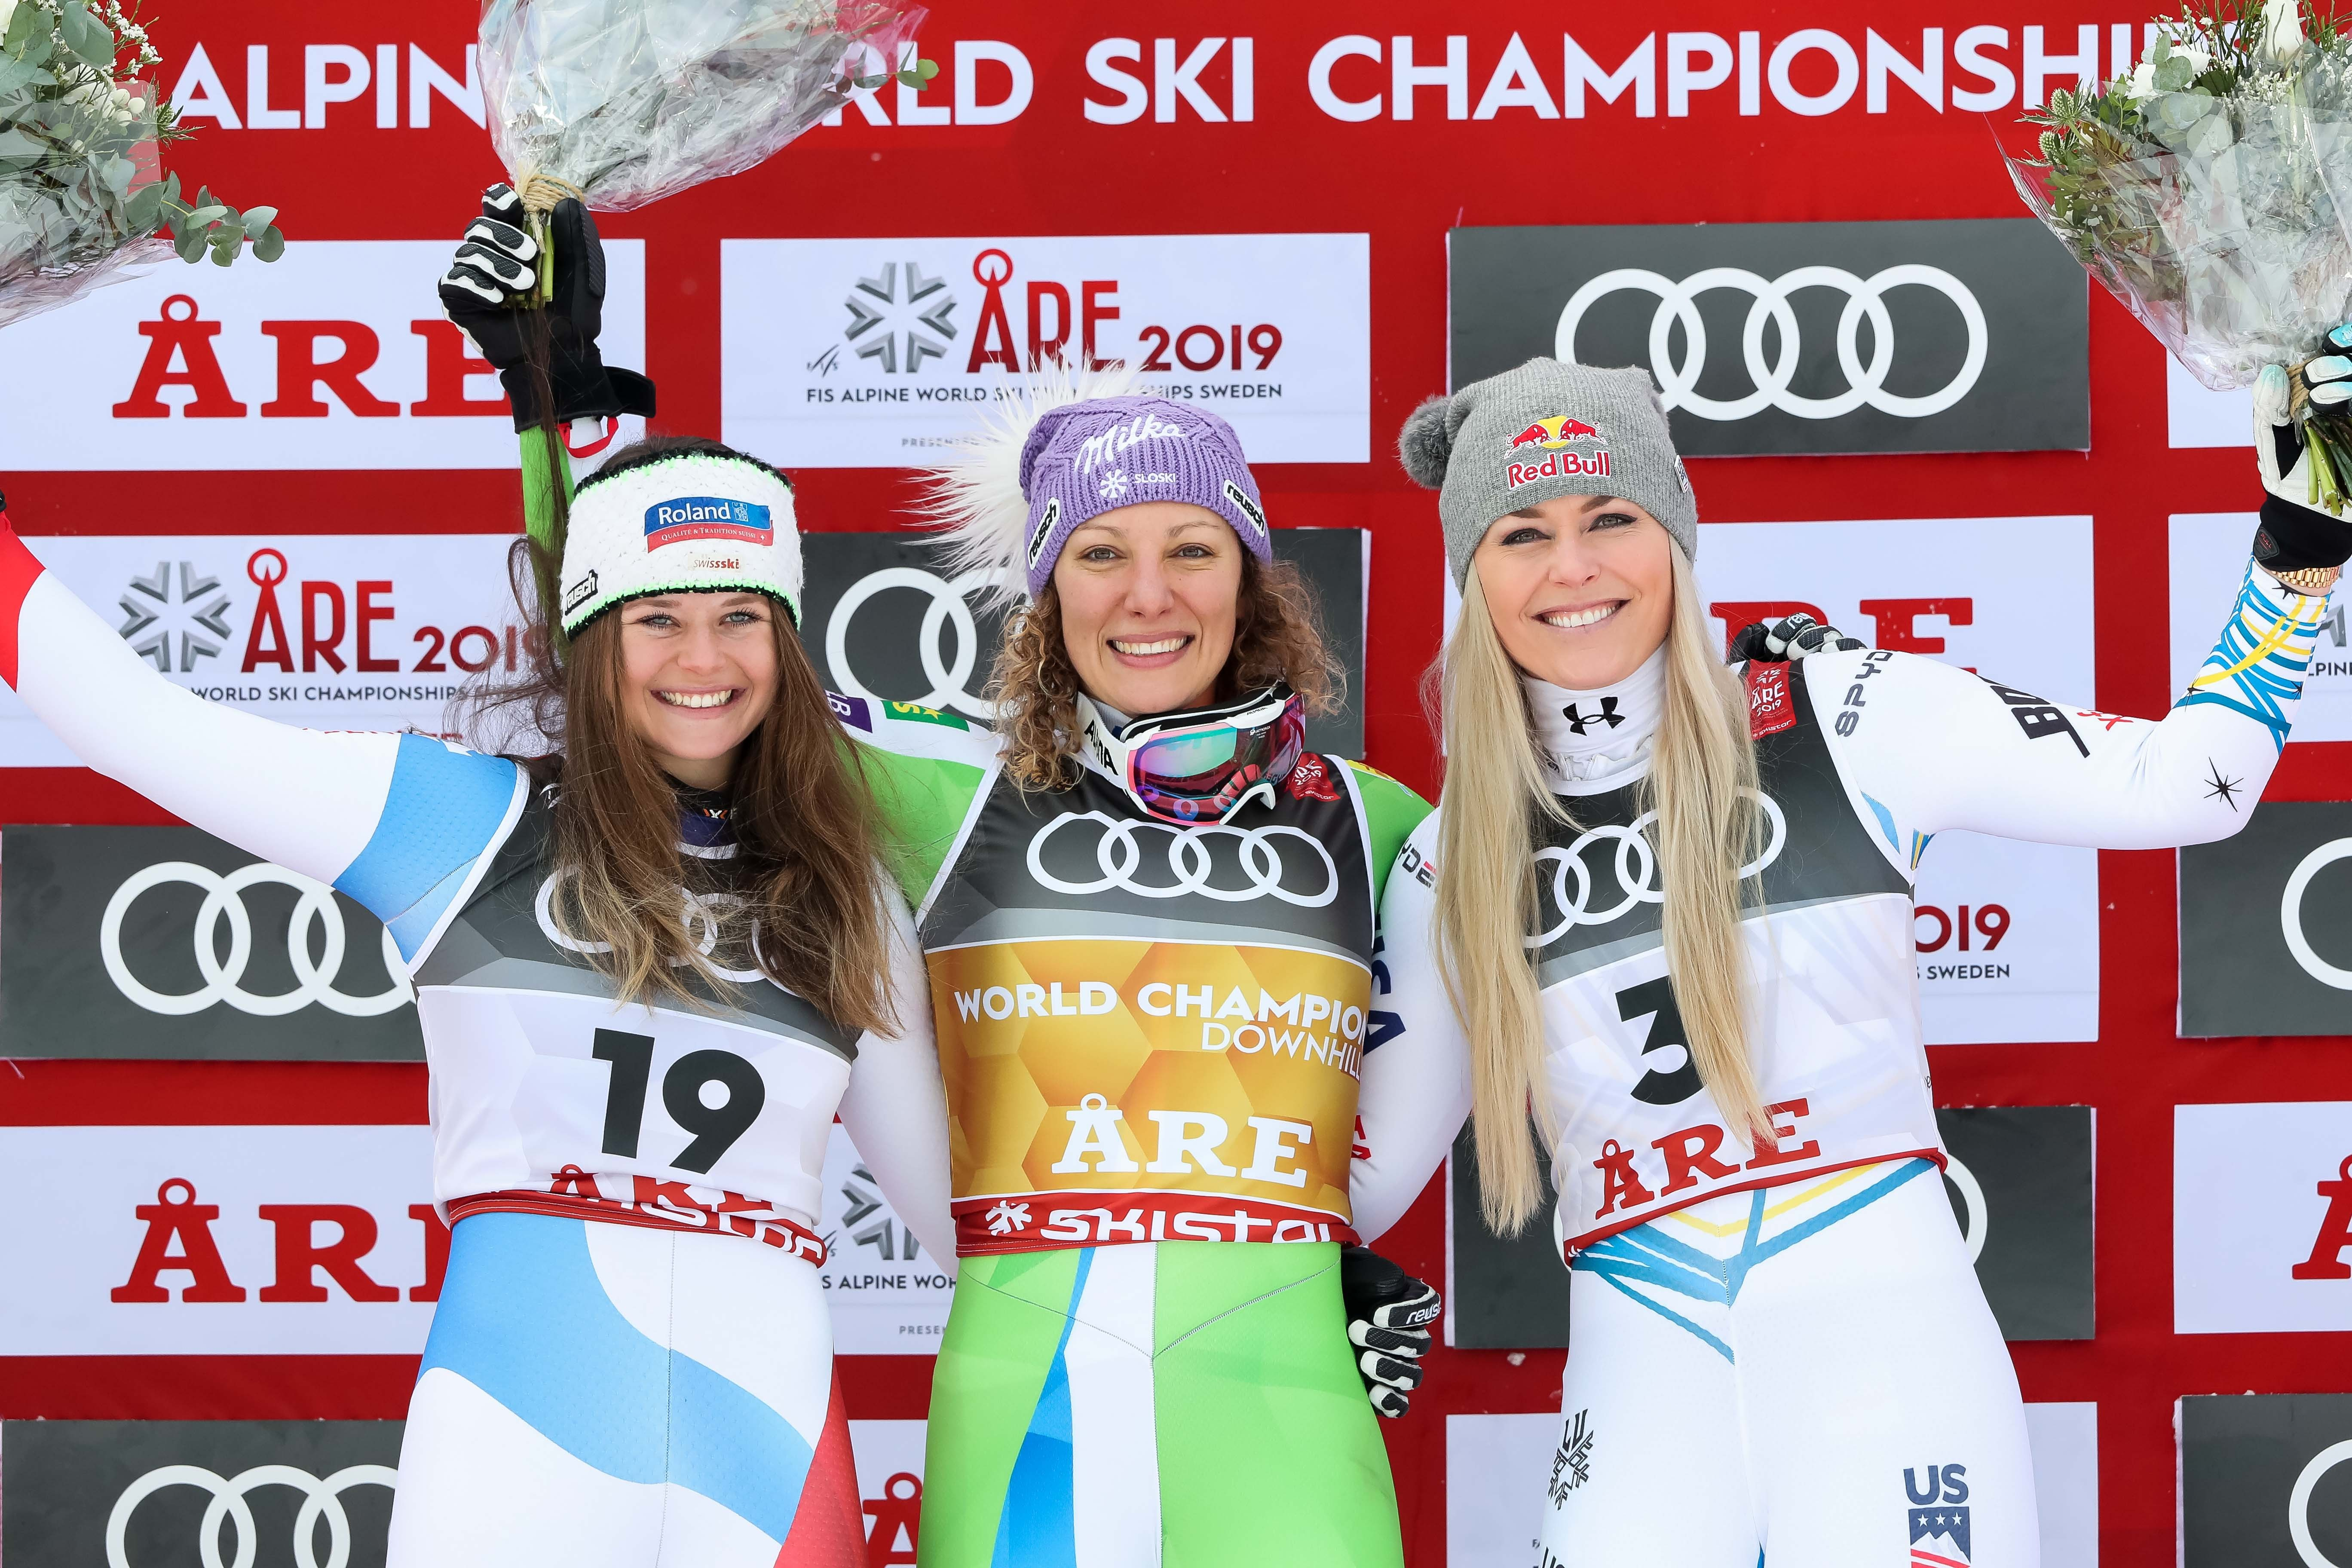 Corinne Suter of Switzerland wins the silver medal, Ilka Stuhec of Slovenia wins the gold medal, Lindsey Vonn of USA wins the bronze medal during the FIS World Ski Championships Women's Downhill on February 10, 2019 in Are Sweden.